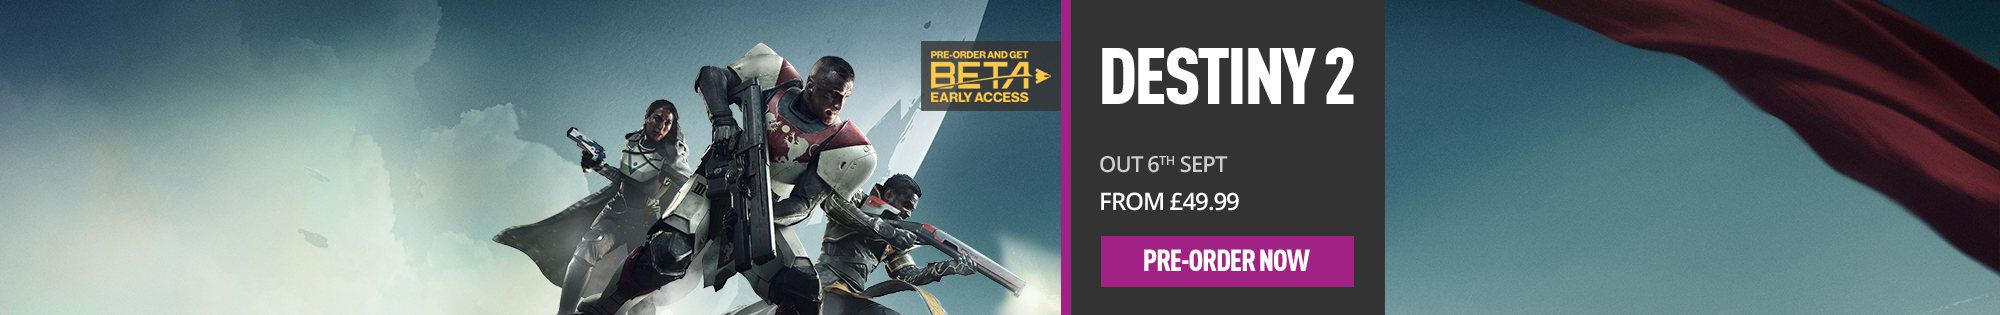 Destiny 2 for PlayStation 4 and Xbox One - Homepage banner